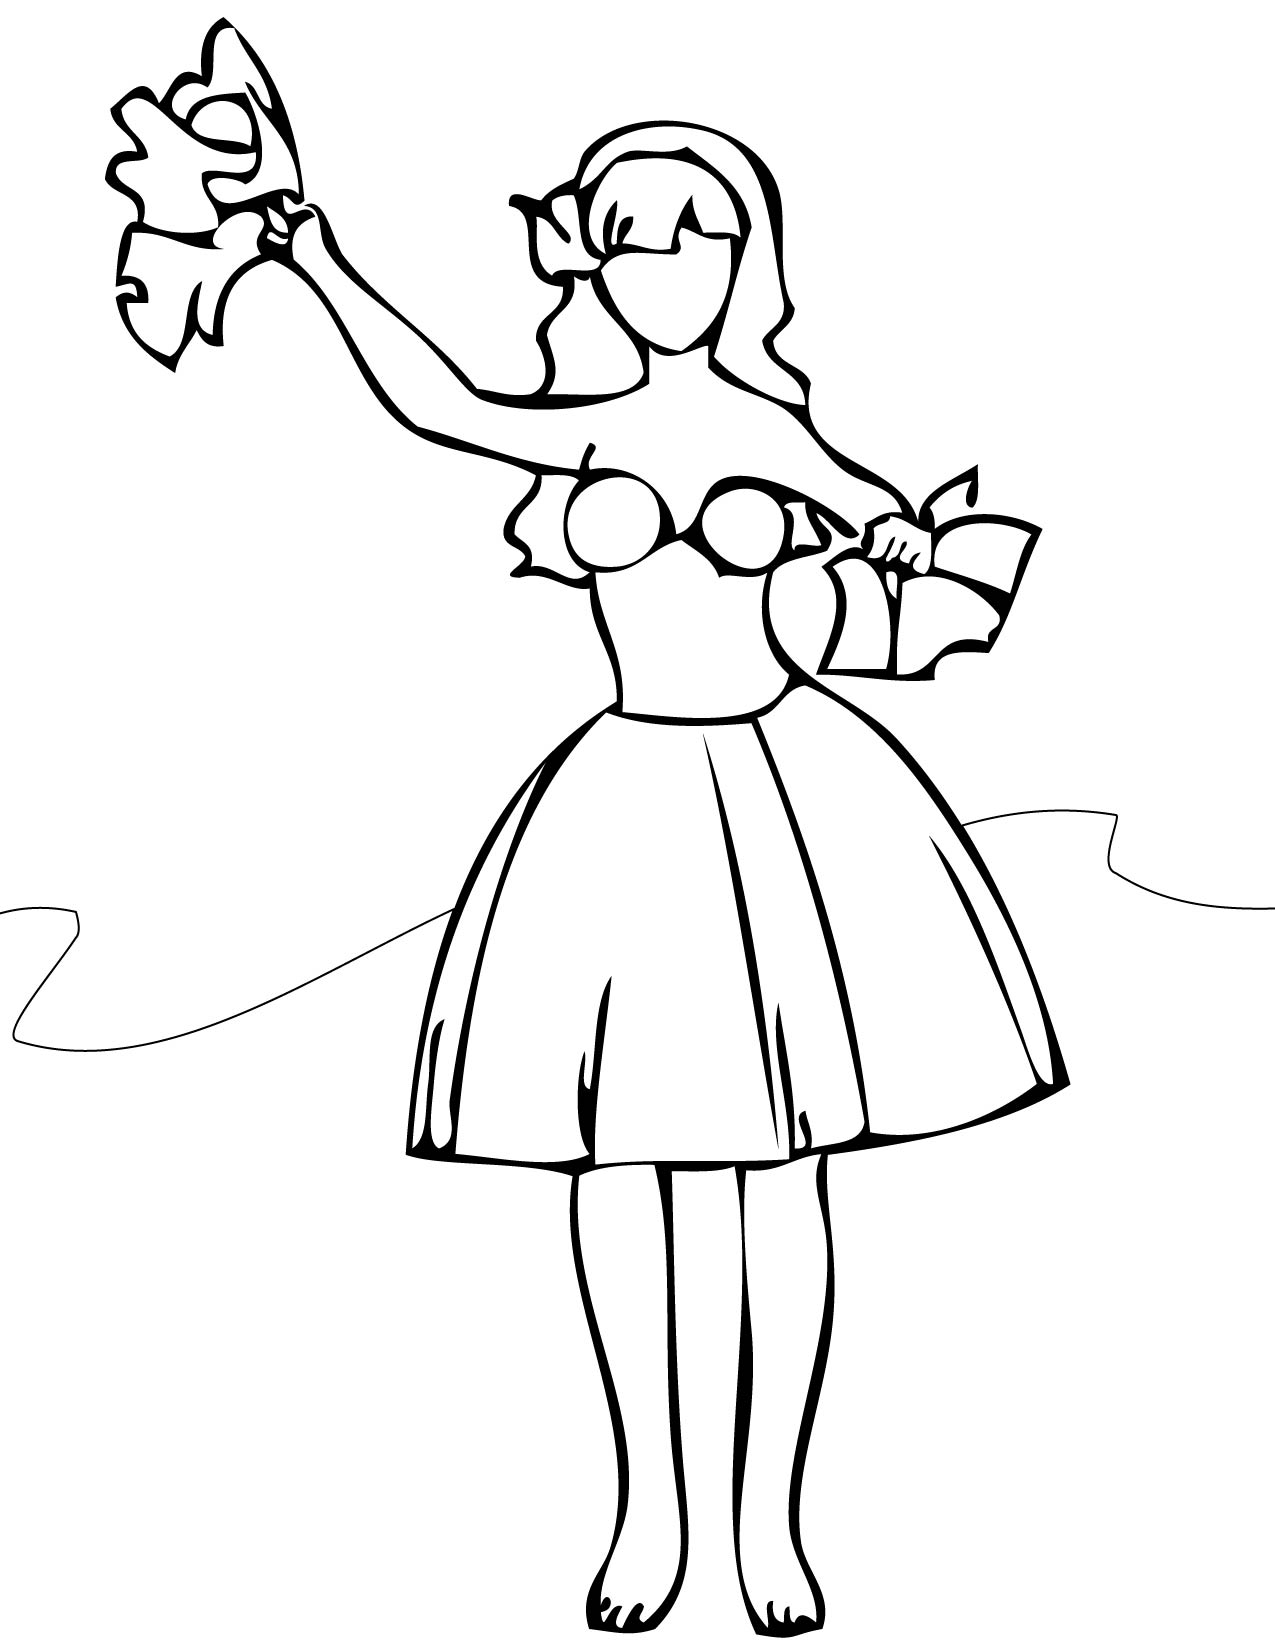 hula - Dance Coloring Pages